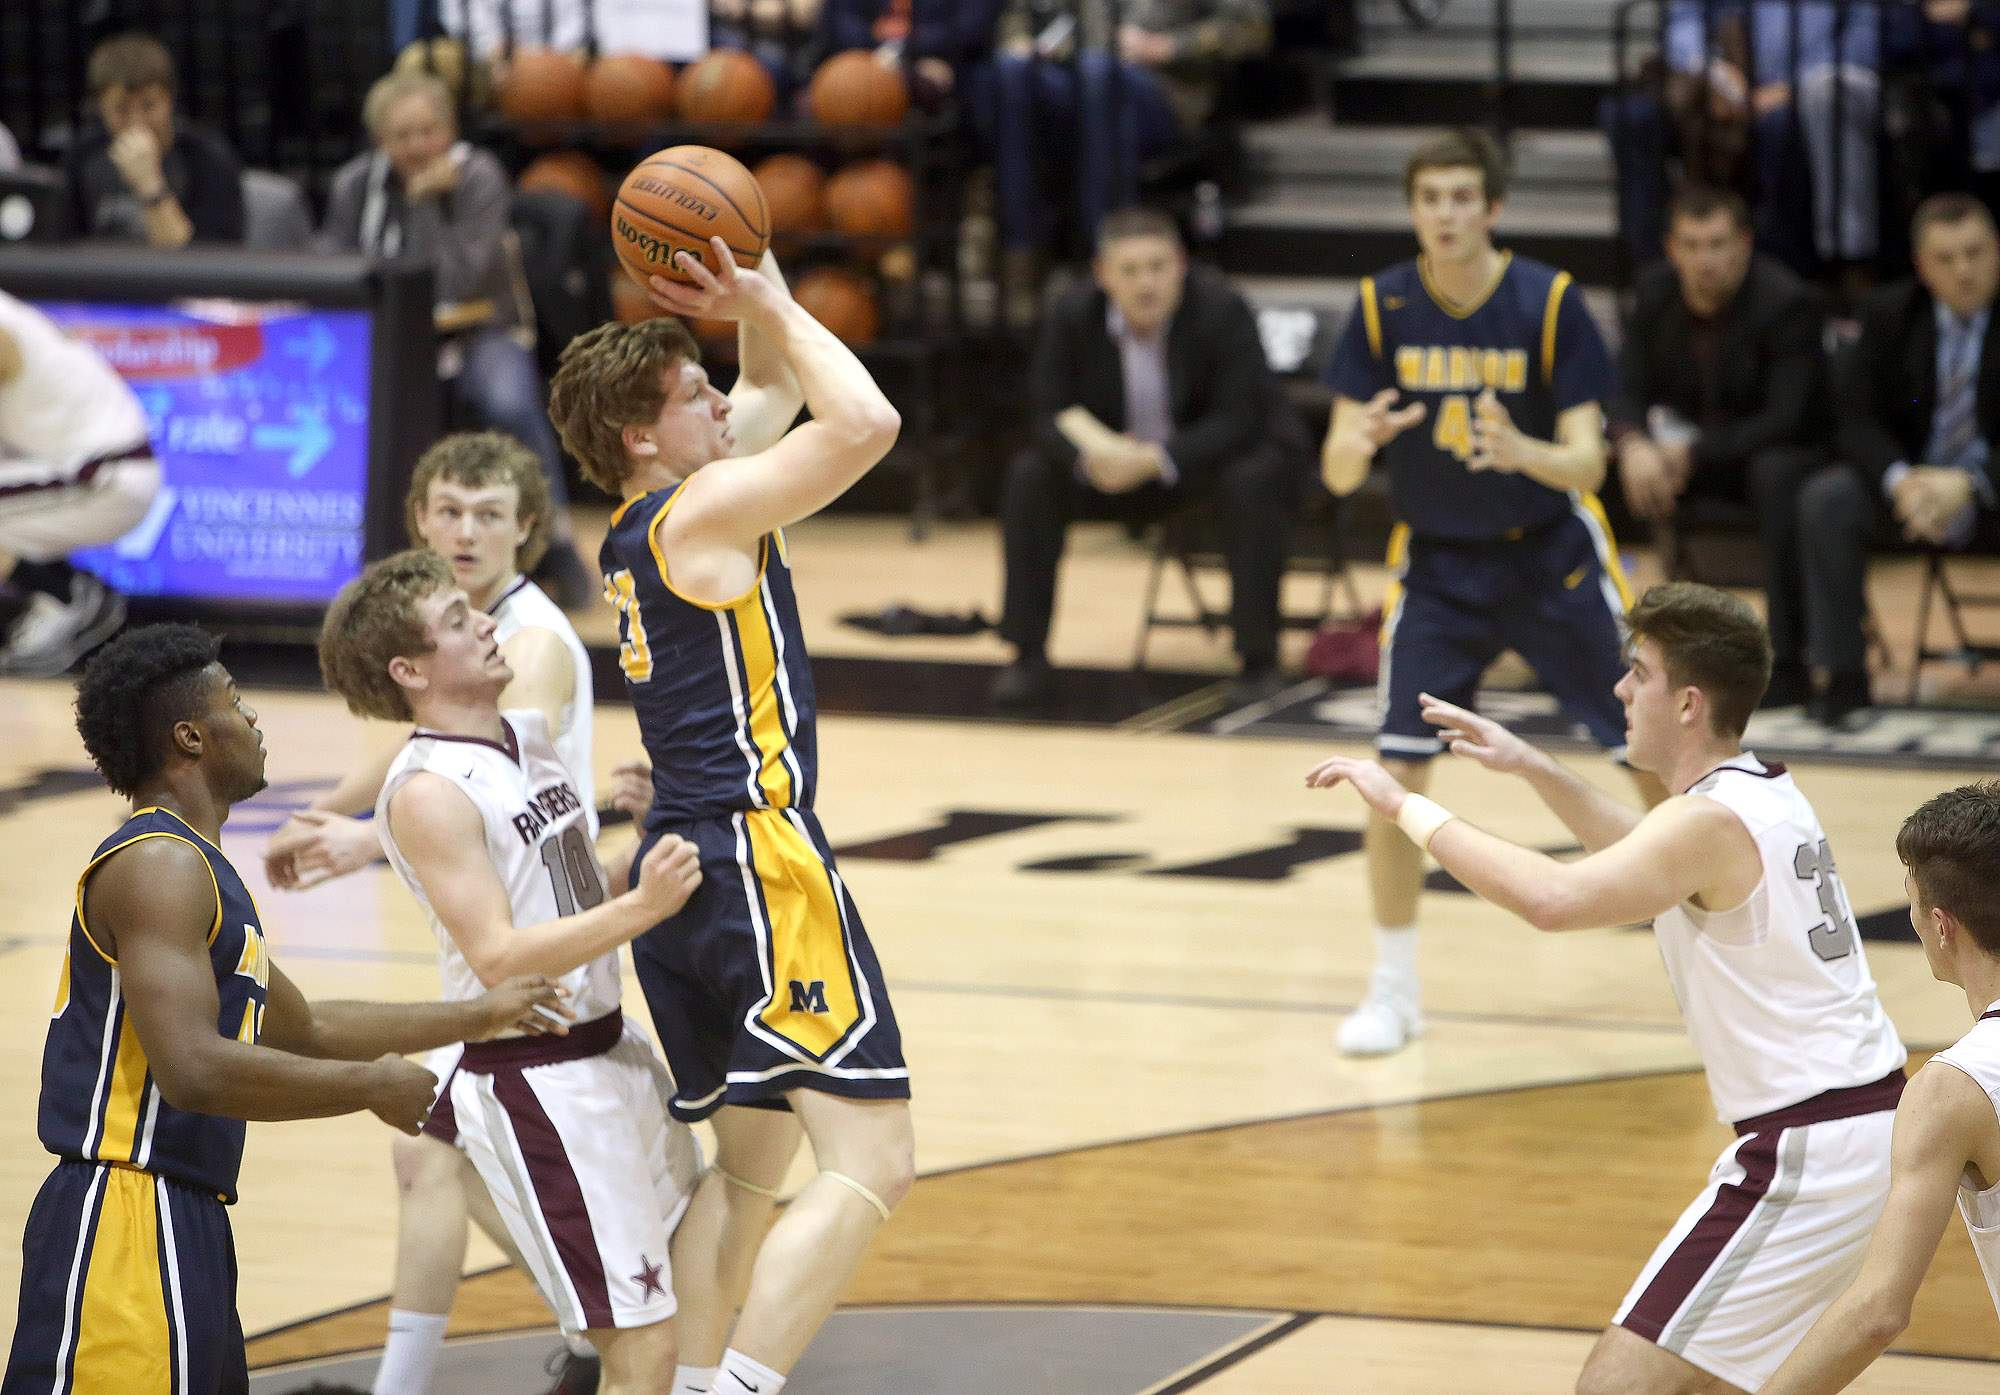 Justin Saddoris scored a career-high 32 points in Tuesday's win over Benton.